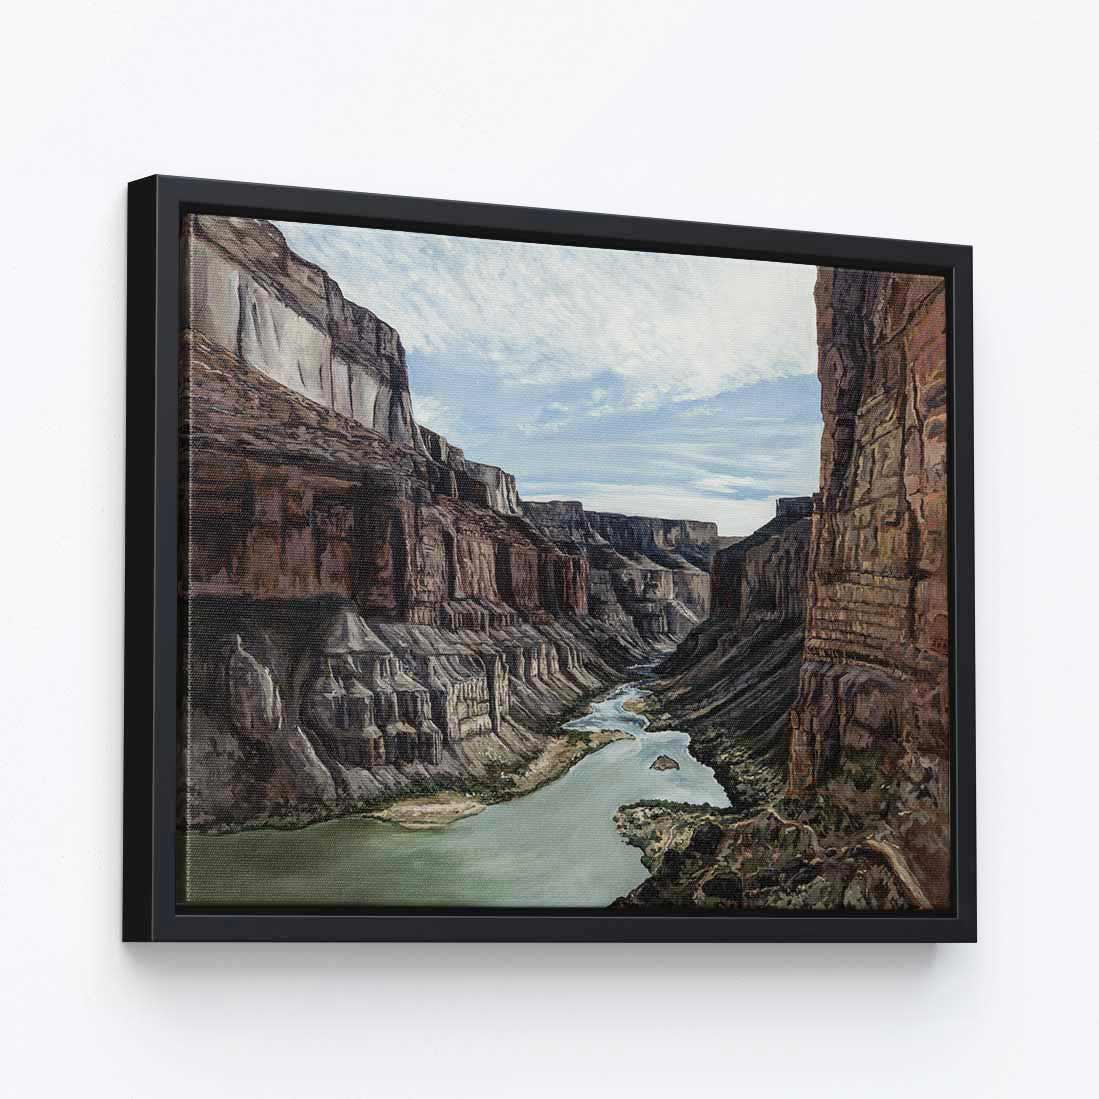 Into the Canyon - Canvas Print by Kristen Fogarty | Art Bloom Canvas Art